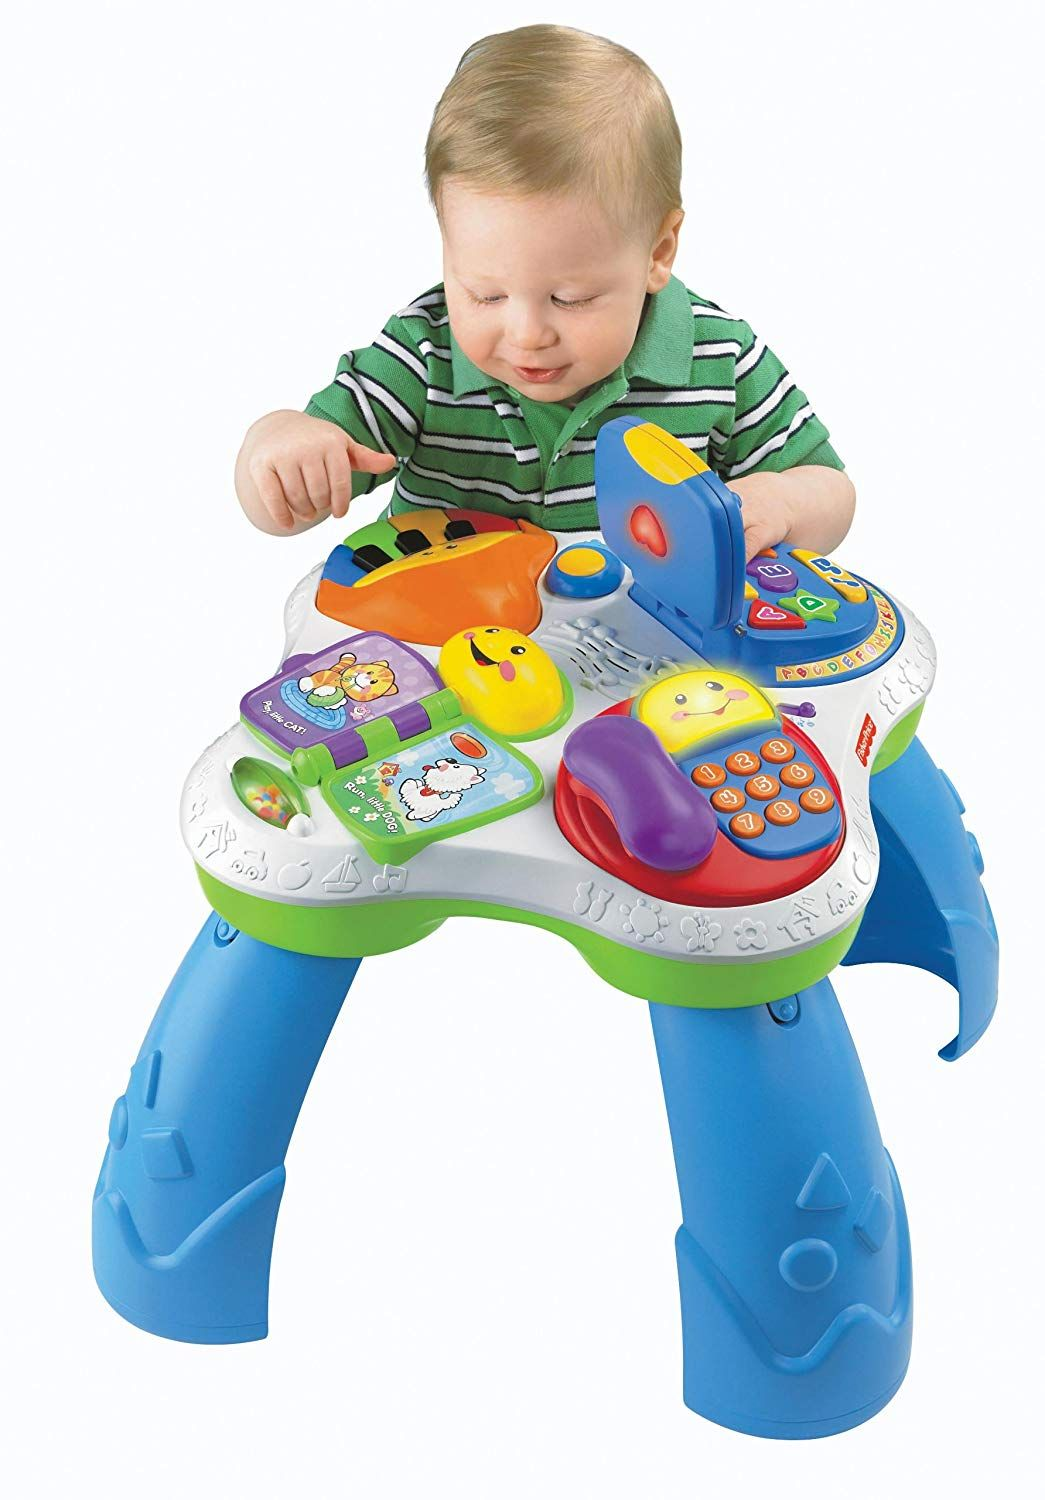 Fisher-Price Laugh Learn Game Controller Fun Play Musical Light up ABCs 123s